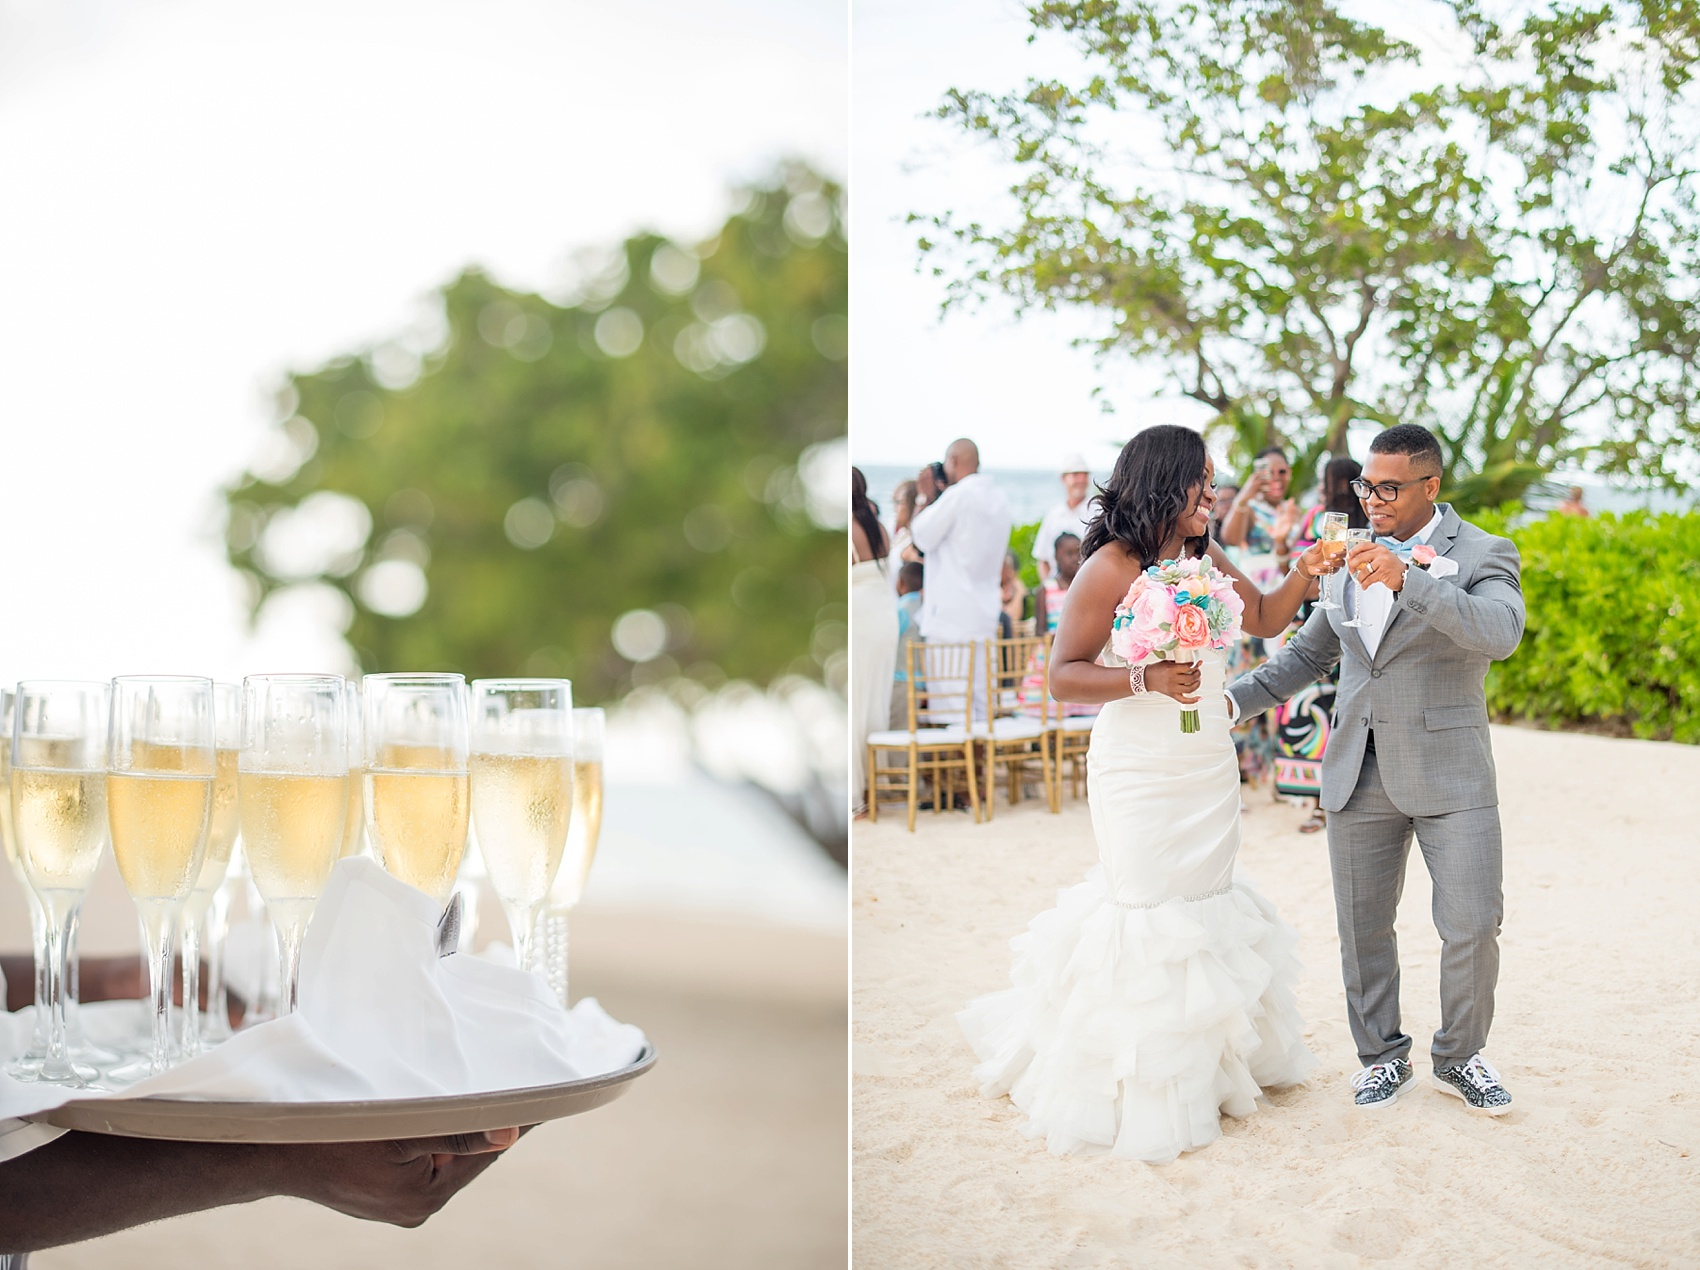 Iberostar Jamaica wedding ceremony photos. Images by Mikkel Paige Photography.